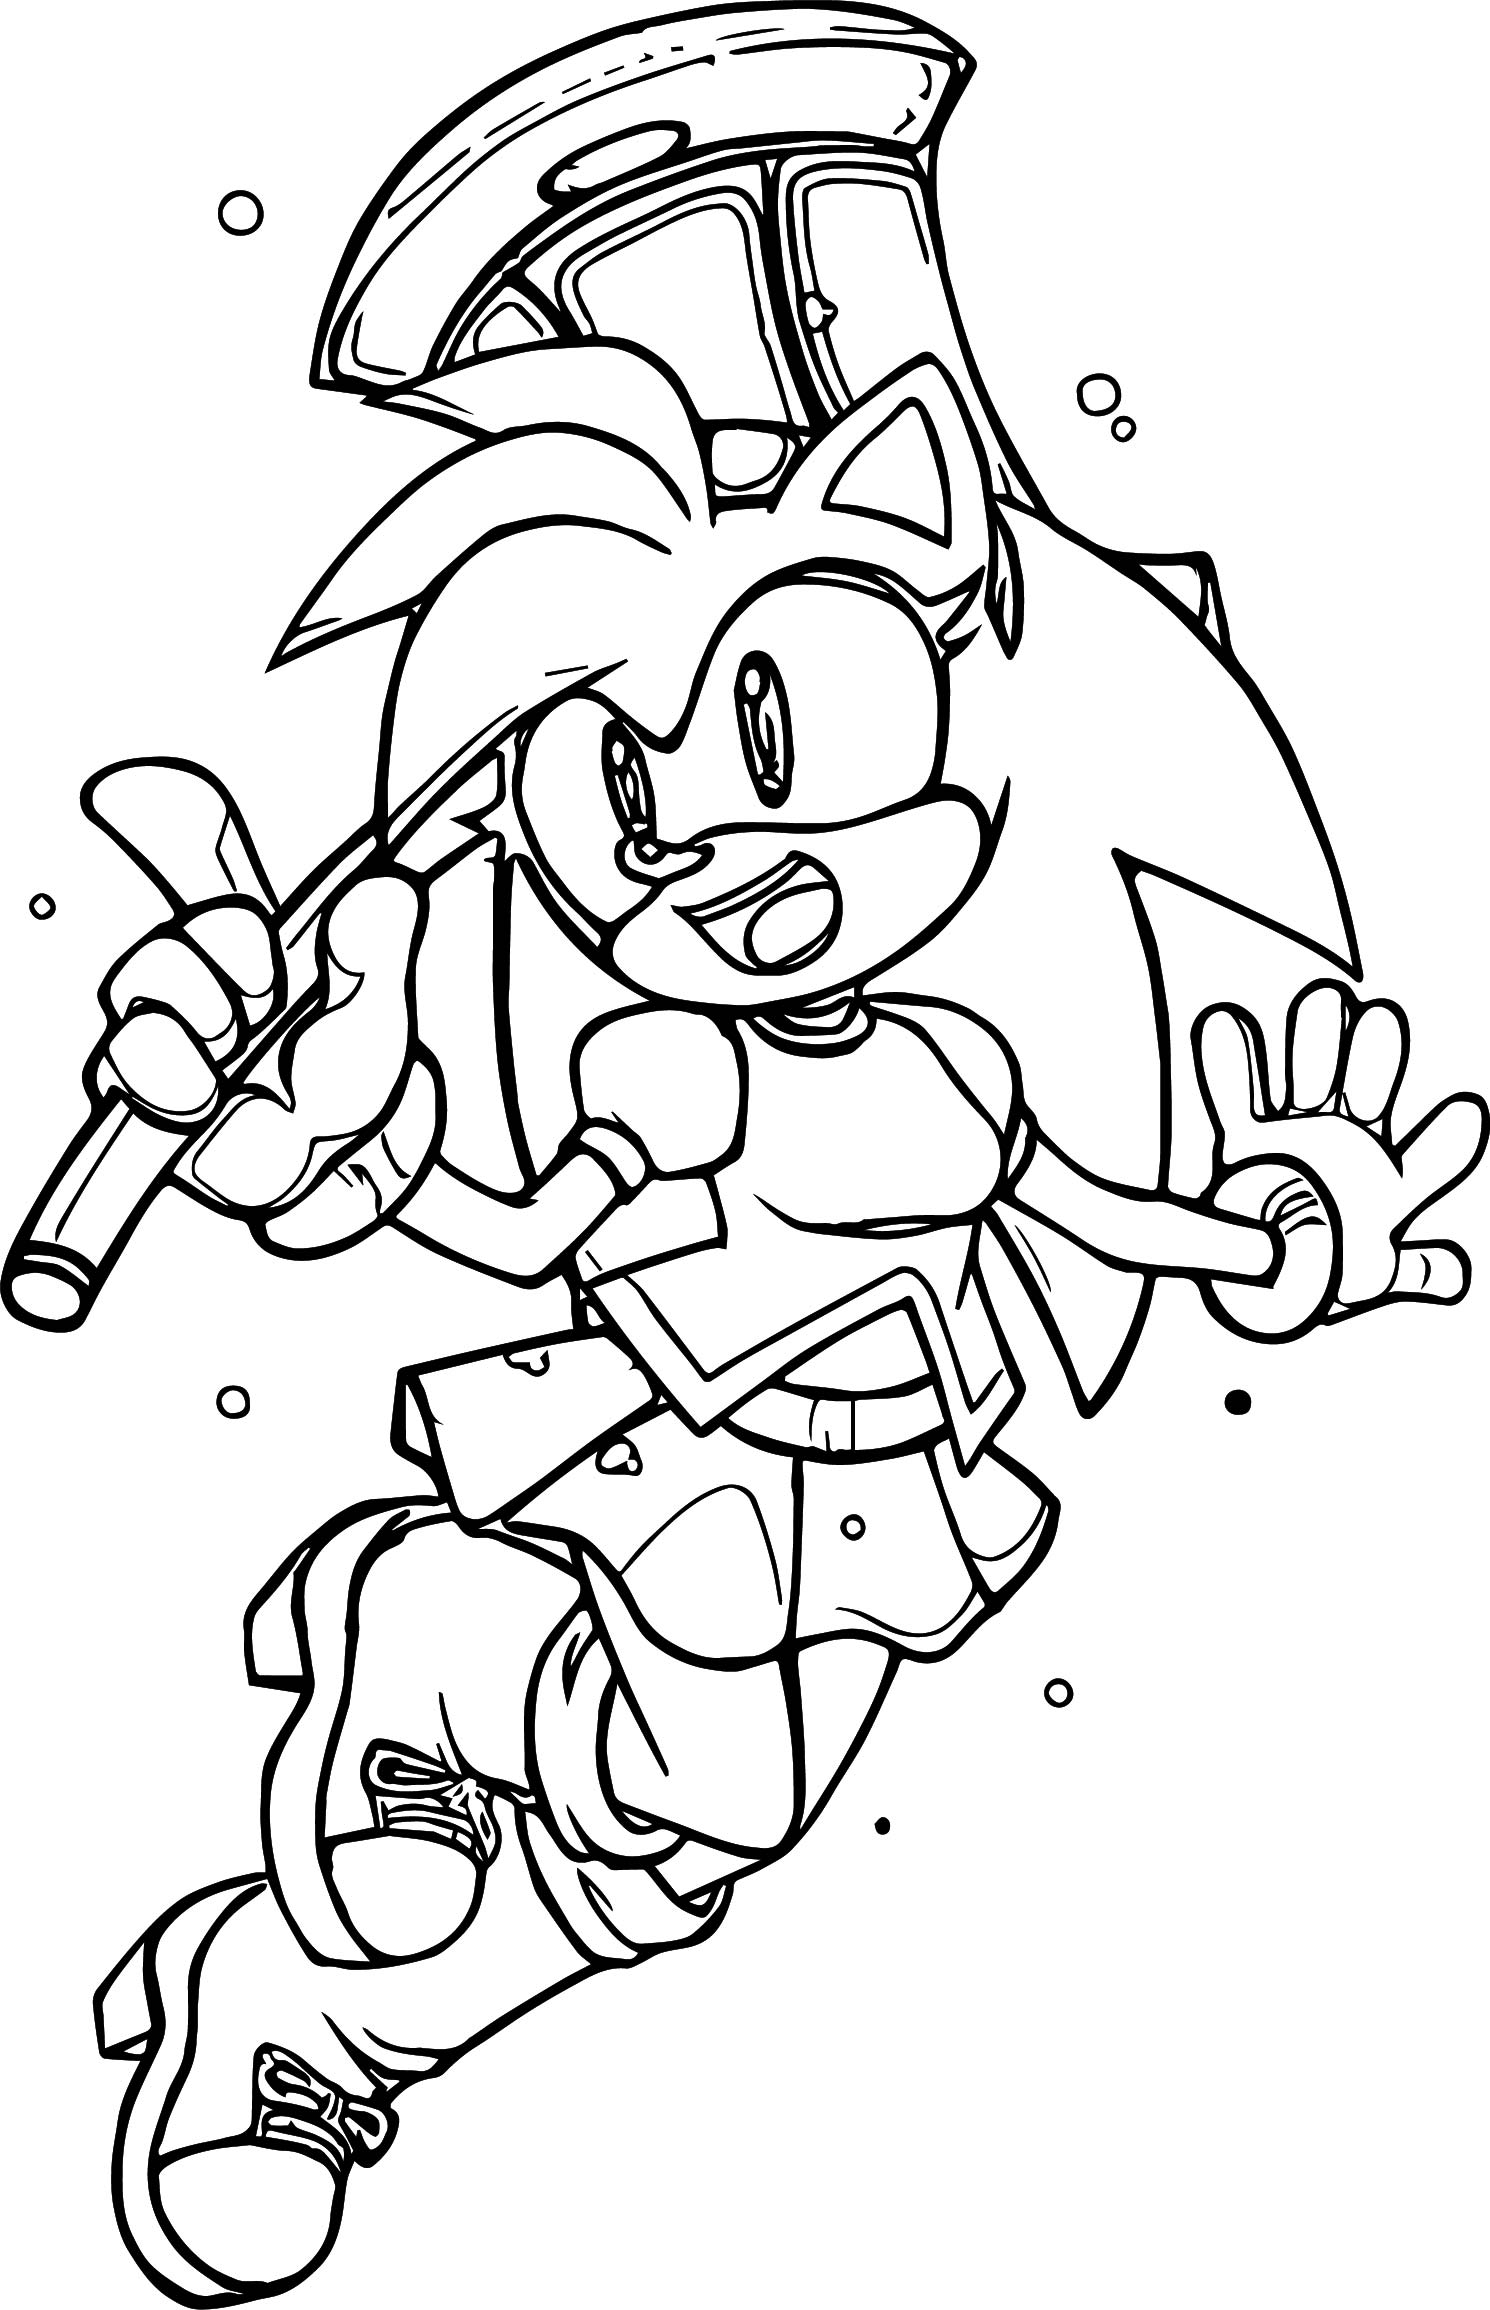 Amy Rose Good Coloring Page